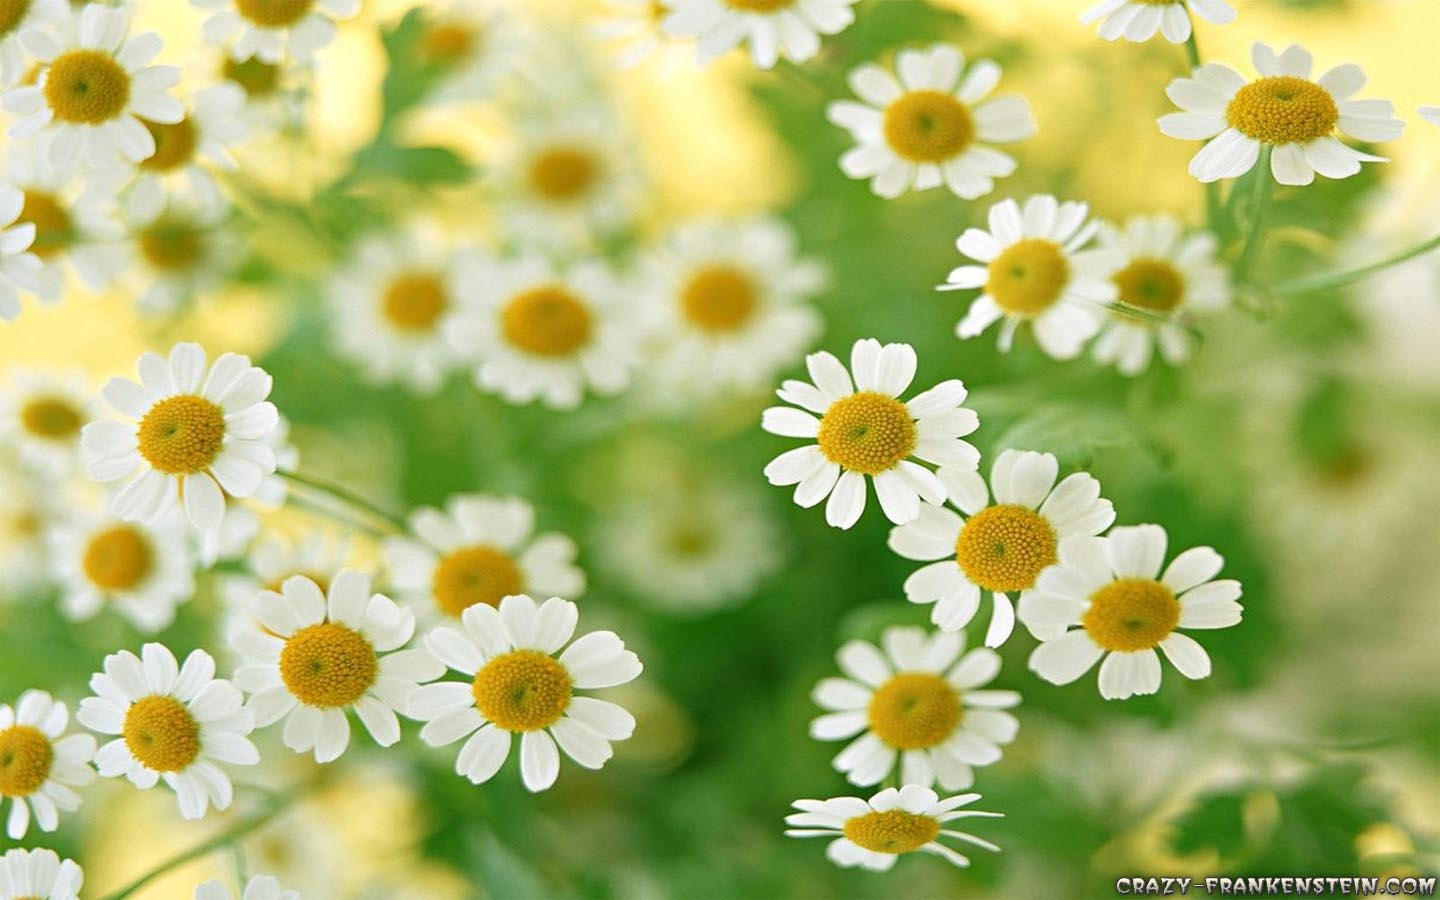 39 Daisy Flower Wallpaper Daisy Flower Wallpaper 8 – Free Wallpaper Wallpaper